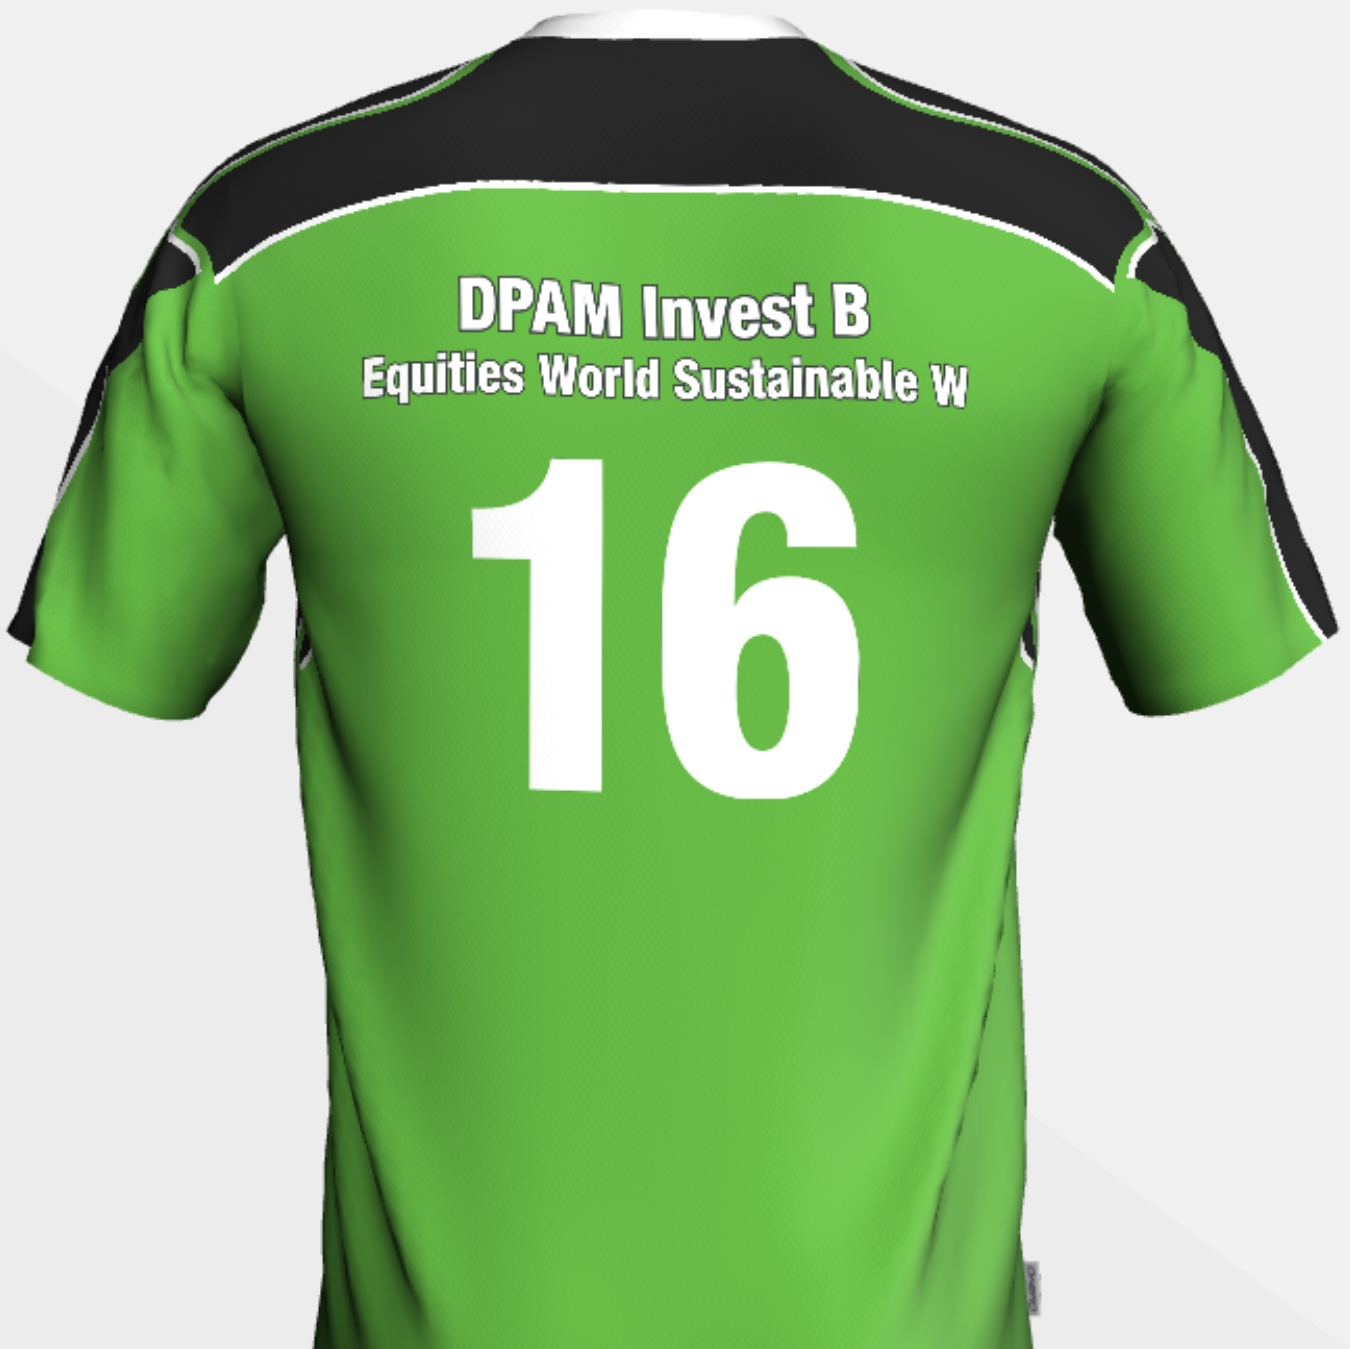 DPAM Invest B Equities World Sustainable W